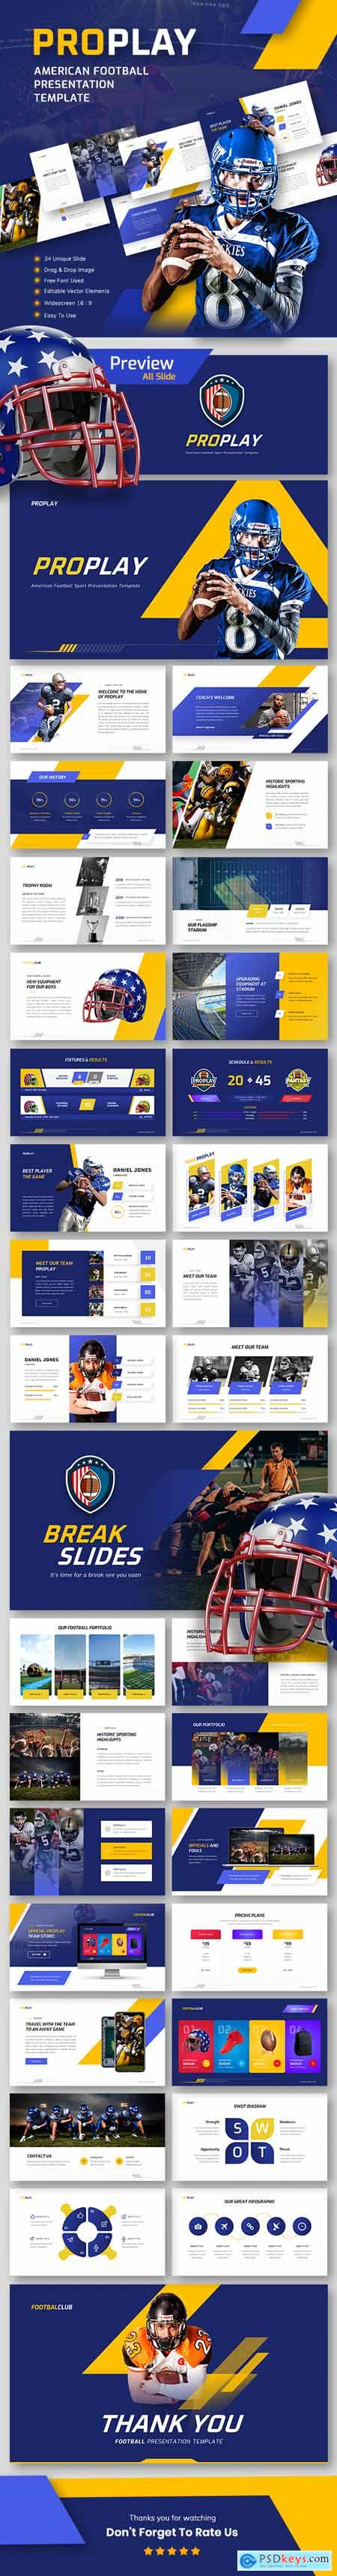 Proplay - American Football Sport PowerPoint Presentation Template 26168706